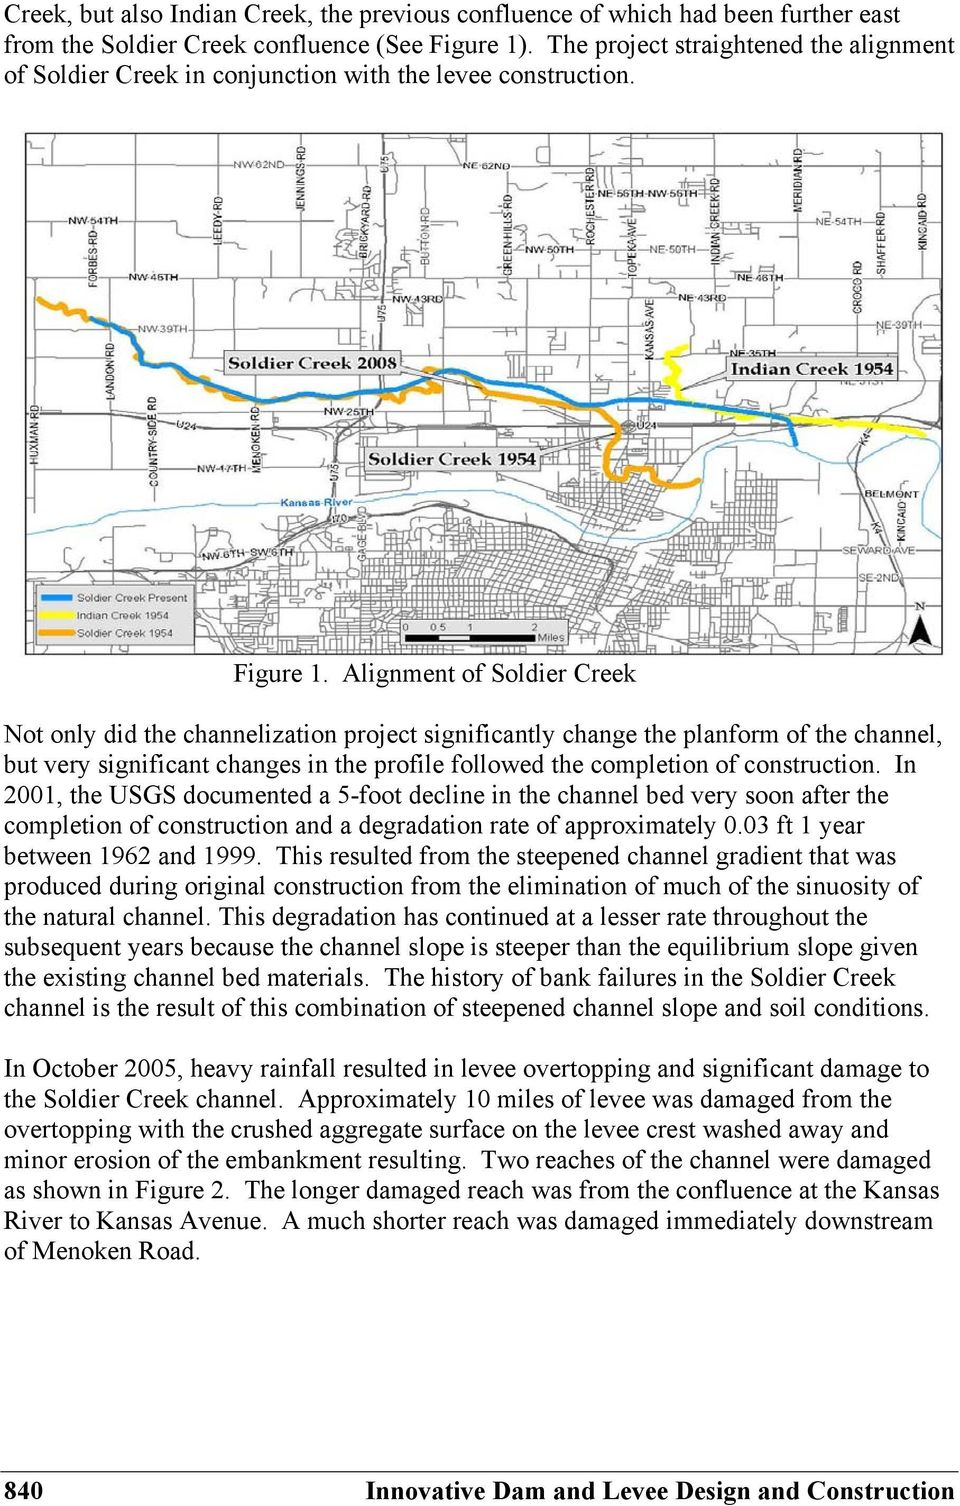 Alignment of Soldier Creek Not only did the channelization project significantly change the planform of the channel, but very significant changes in the profile followed the completion of